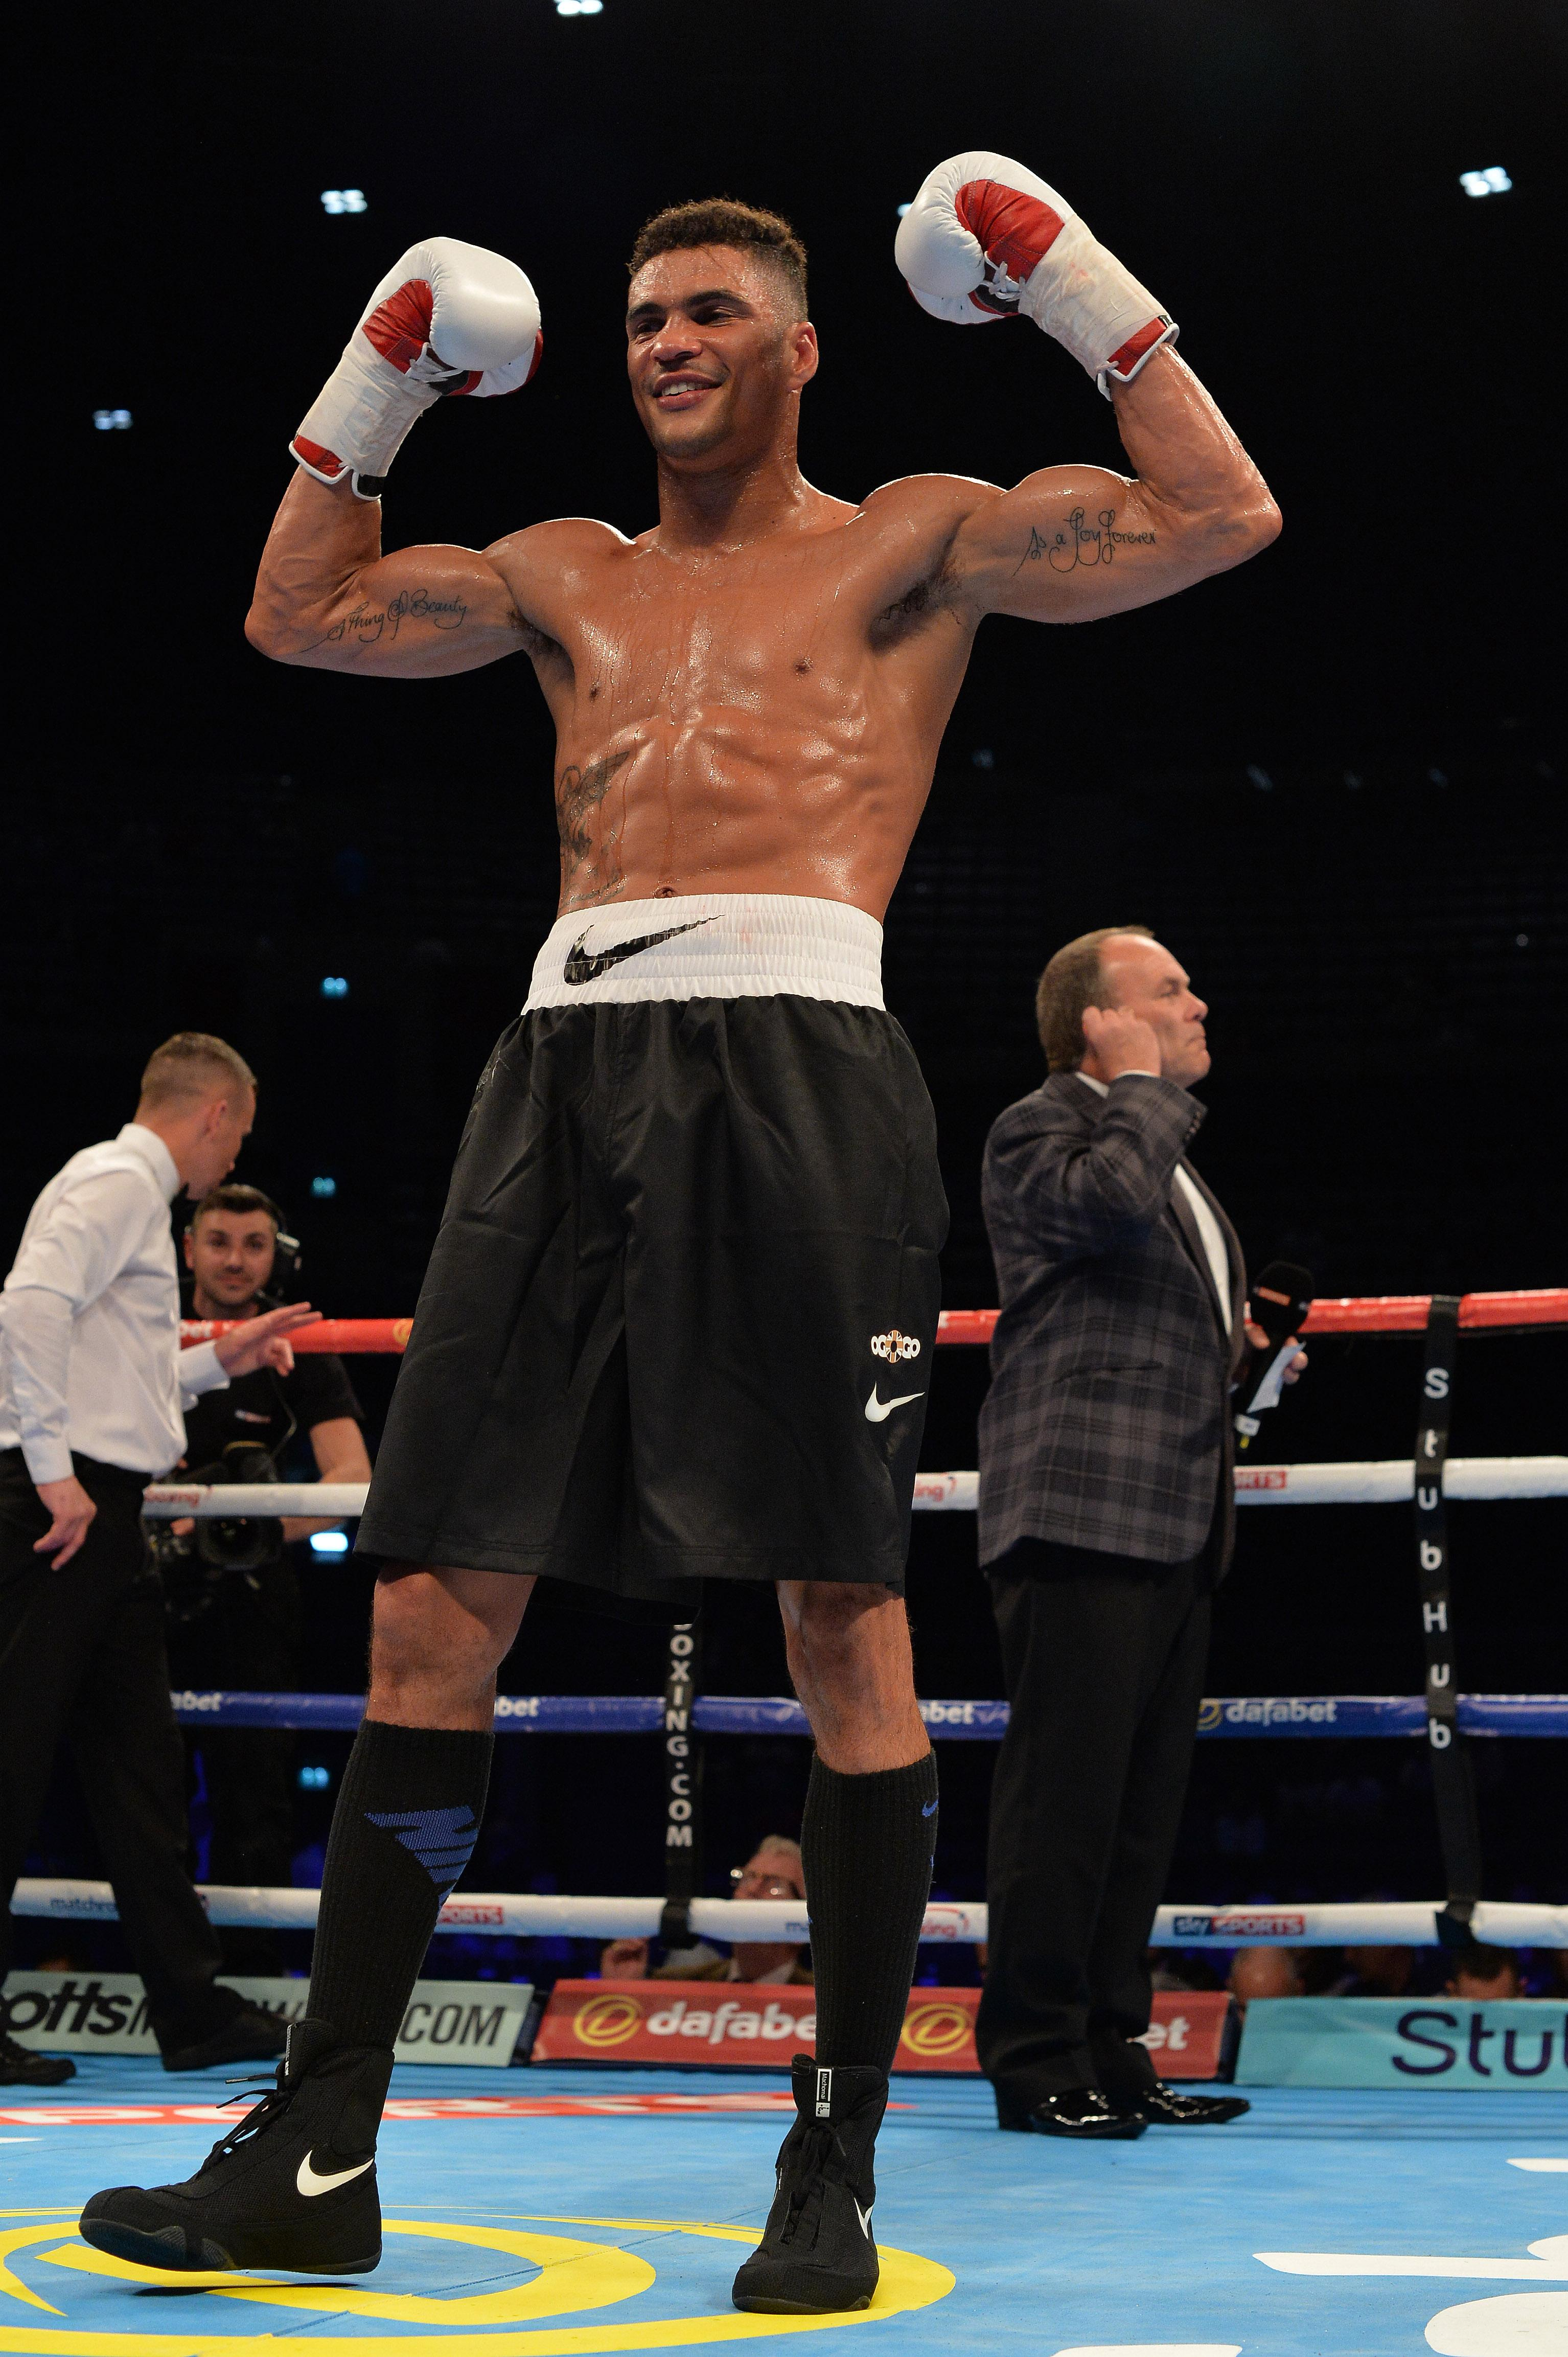 Anthony Ogogo won a Bronze medal at the 2012 Olympic games